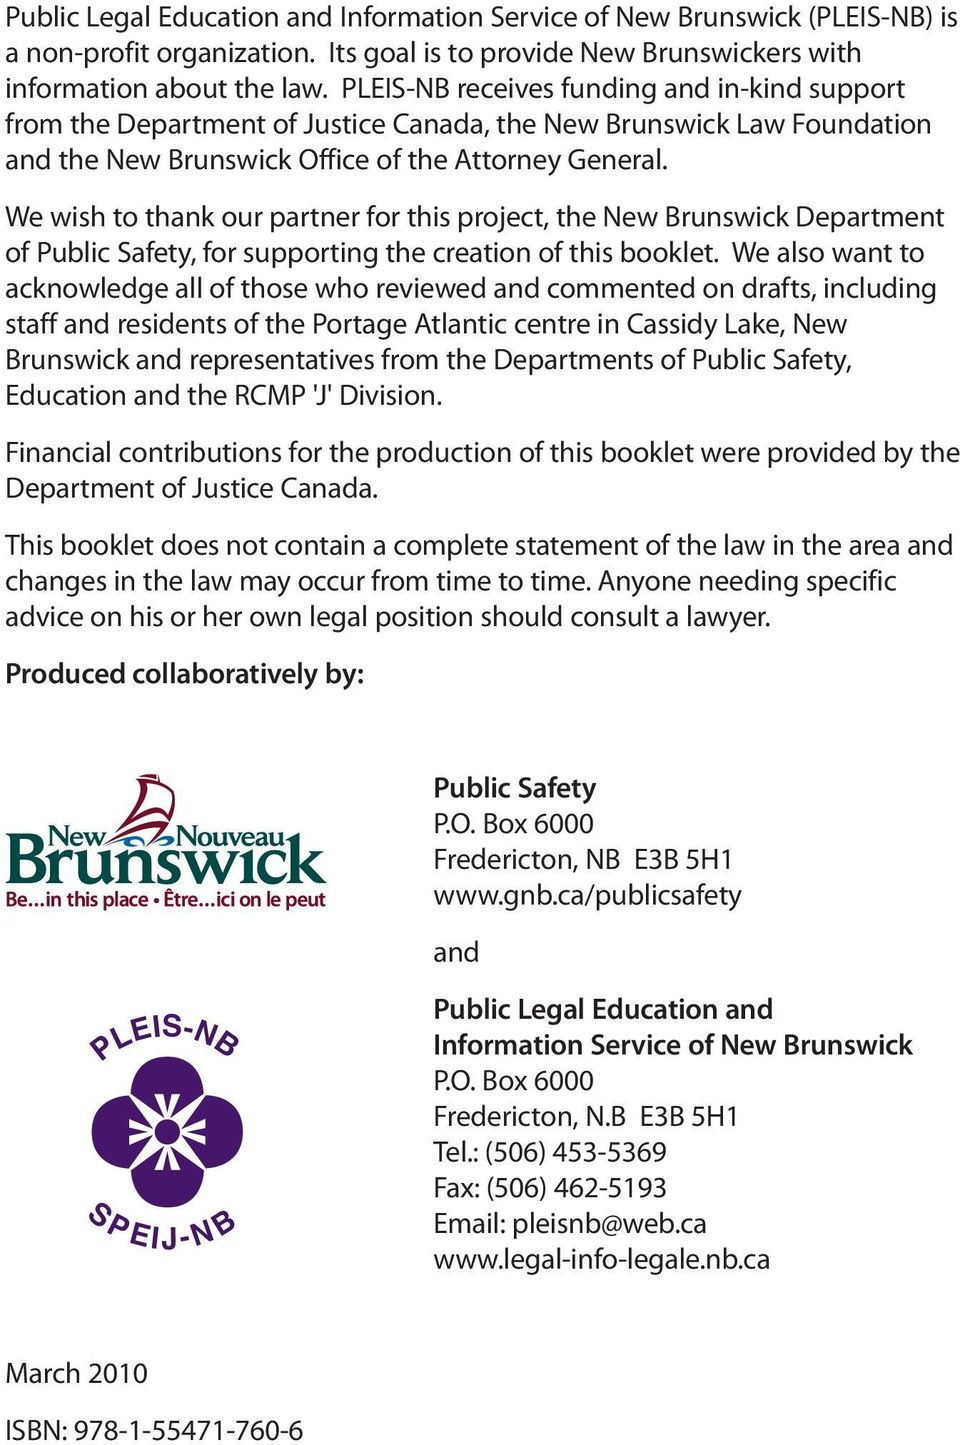 We wish to thank our partner for this project, the New Brunswick Department of Public Safety, for supporting the creation of this booklet.